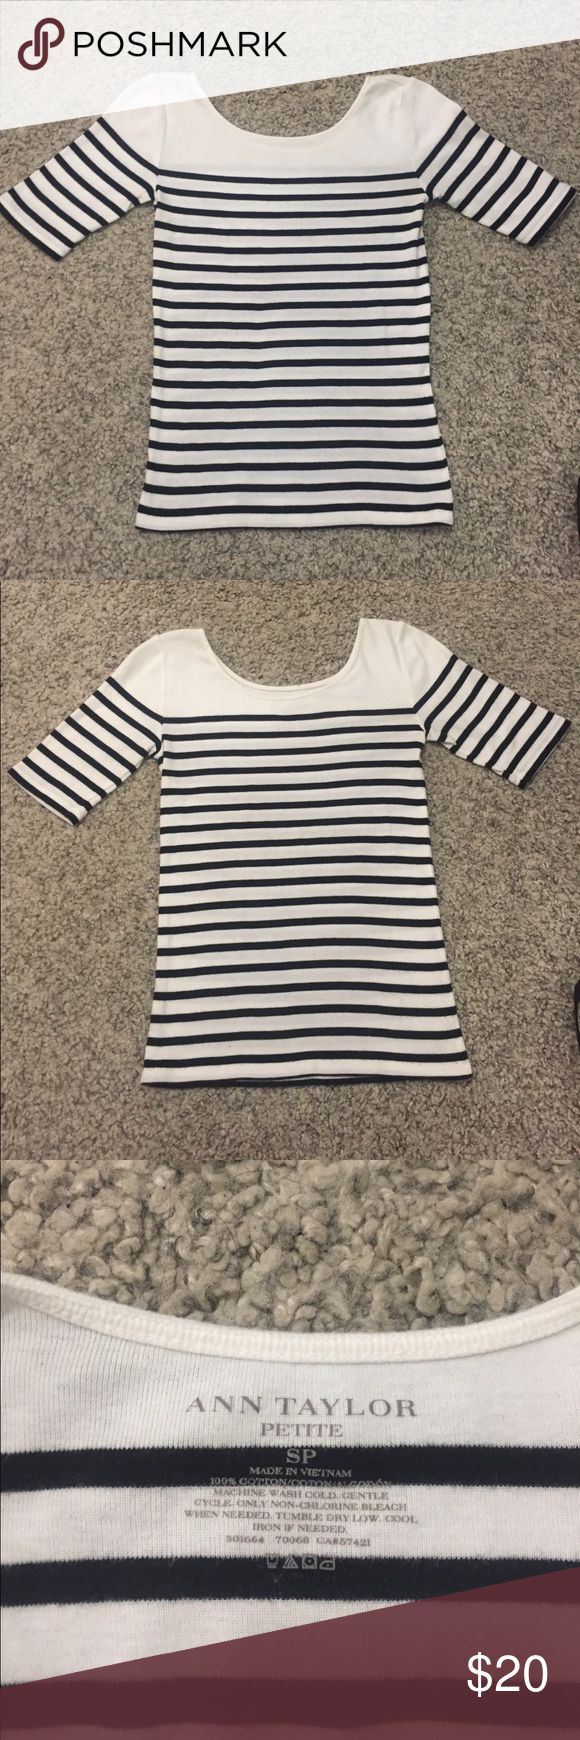 Ann Taylor striped top One of my closet staples and perfect for the fall. Pairs well with jeans, nude flats and a green military jacket. Ann Taylor Tops Tees - Short Sleeve